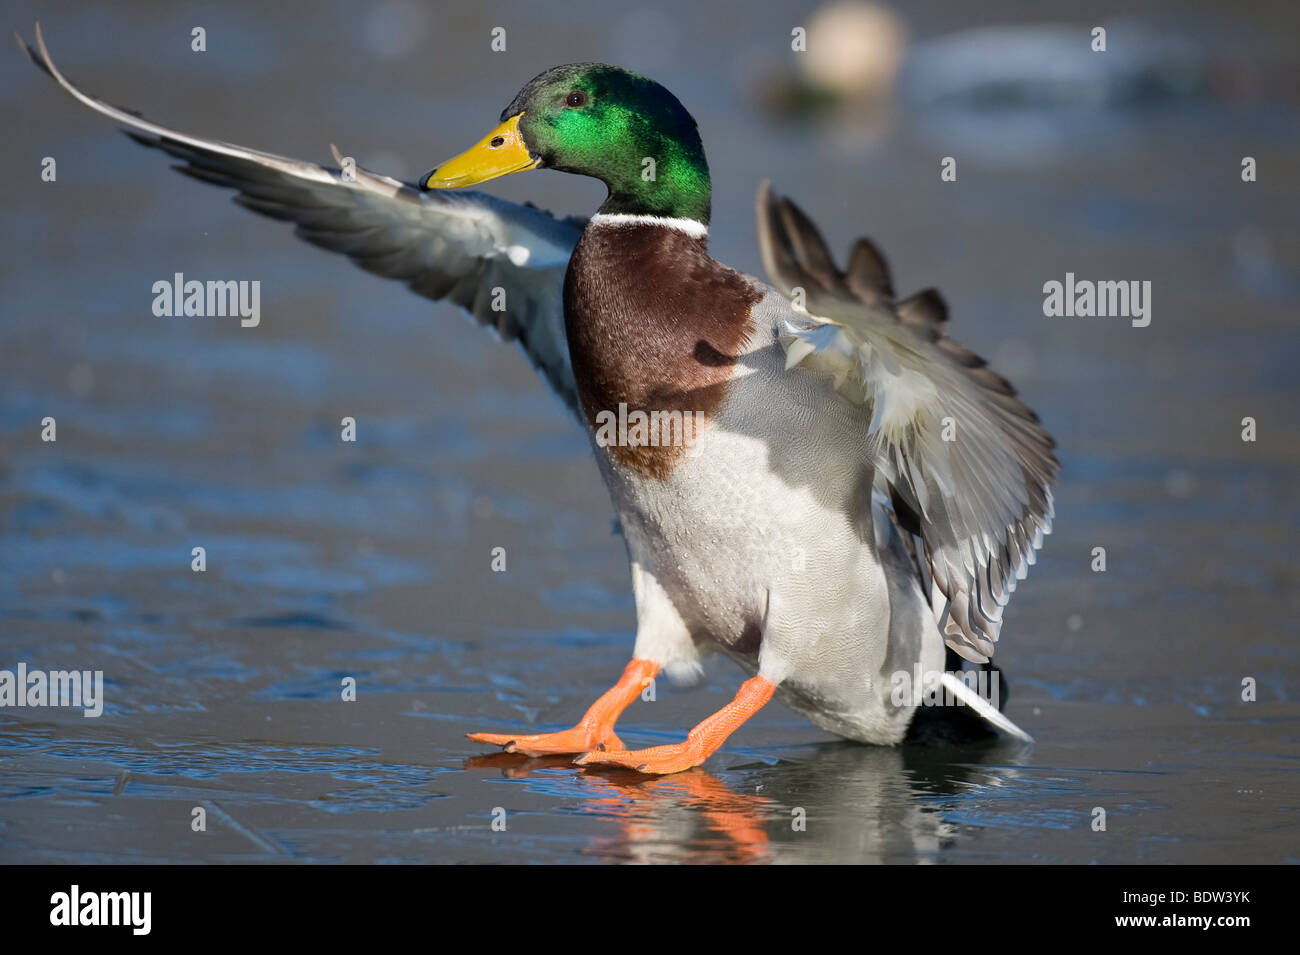 A duck beating its wings - Stock Image